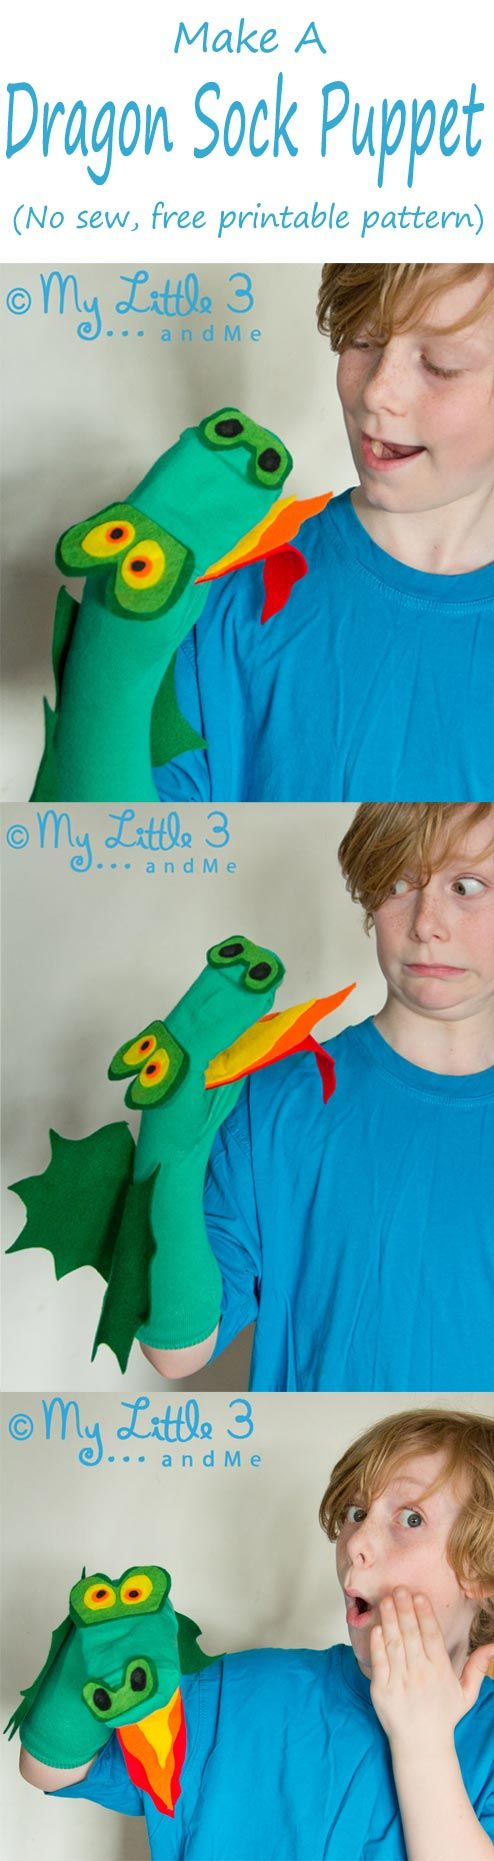 Make an adorable no sew Dragon Sock Puppet. (Free printable pattern.) // títere dragón con calcetín